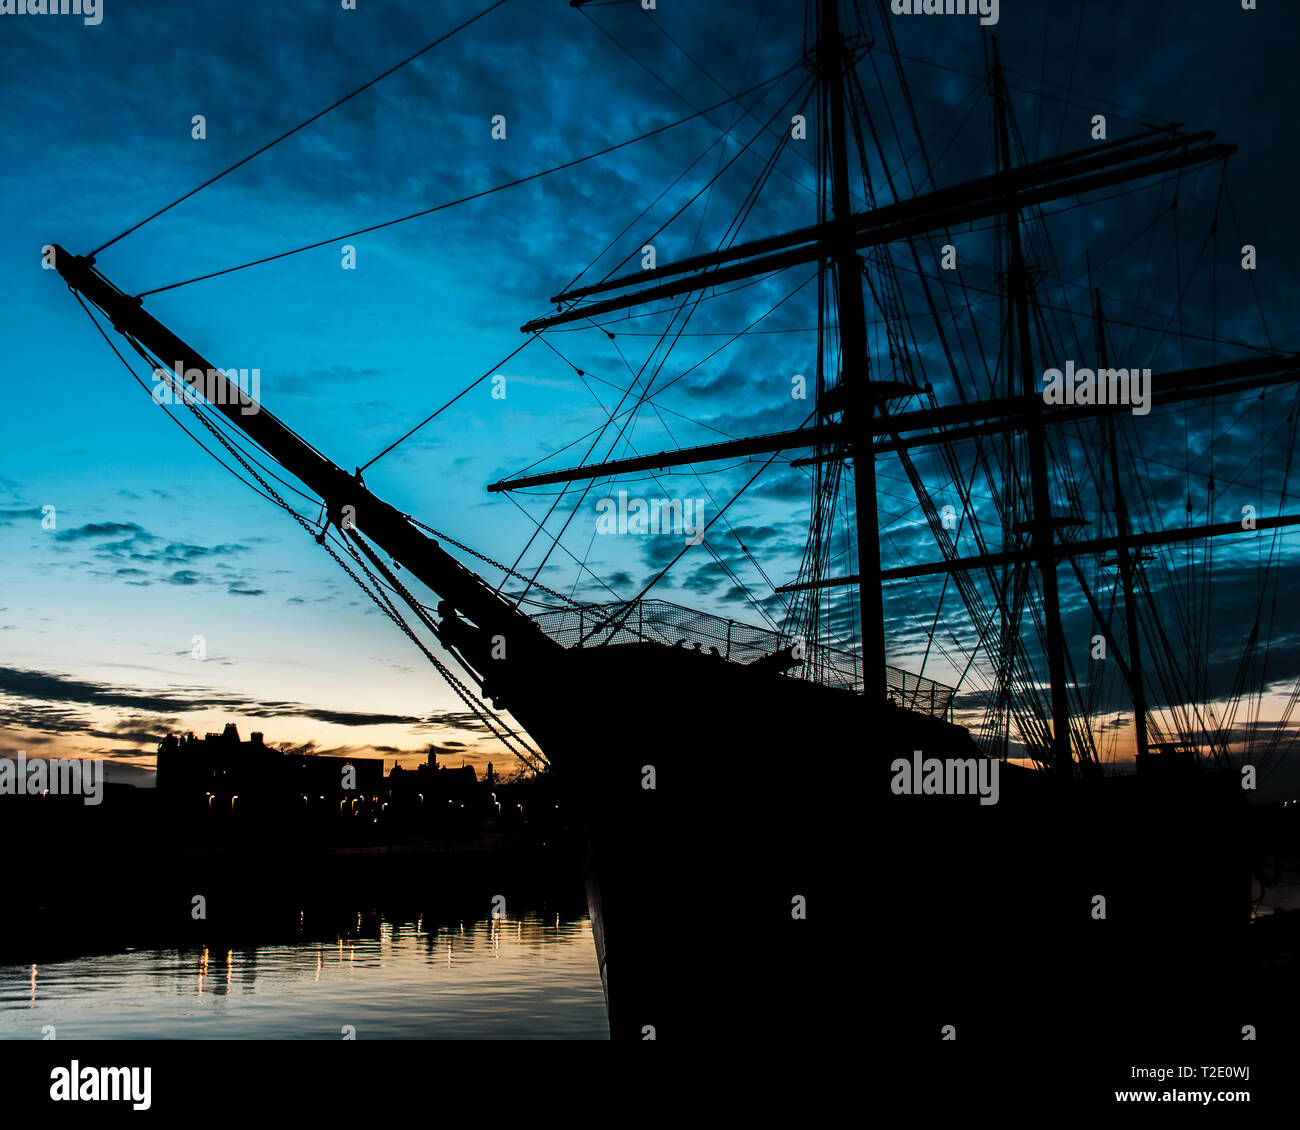 The Riverside transport museum tall ship on the River Clyde, Glasgow - Stock Image